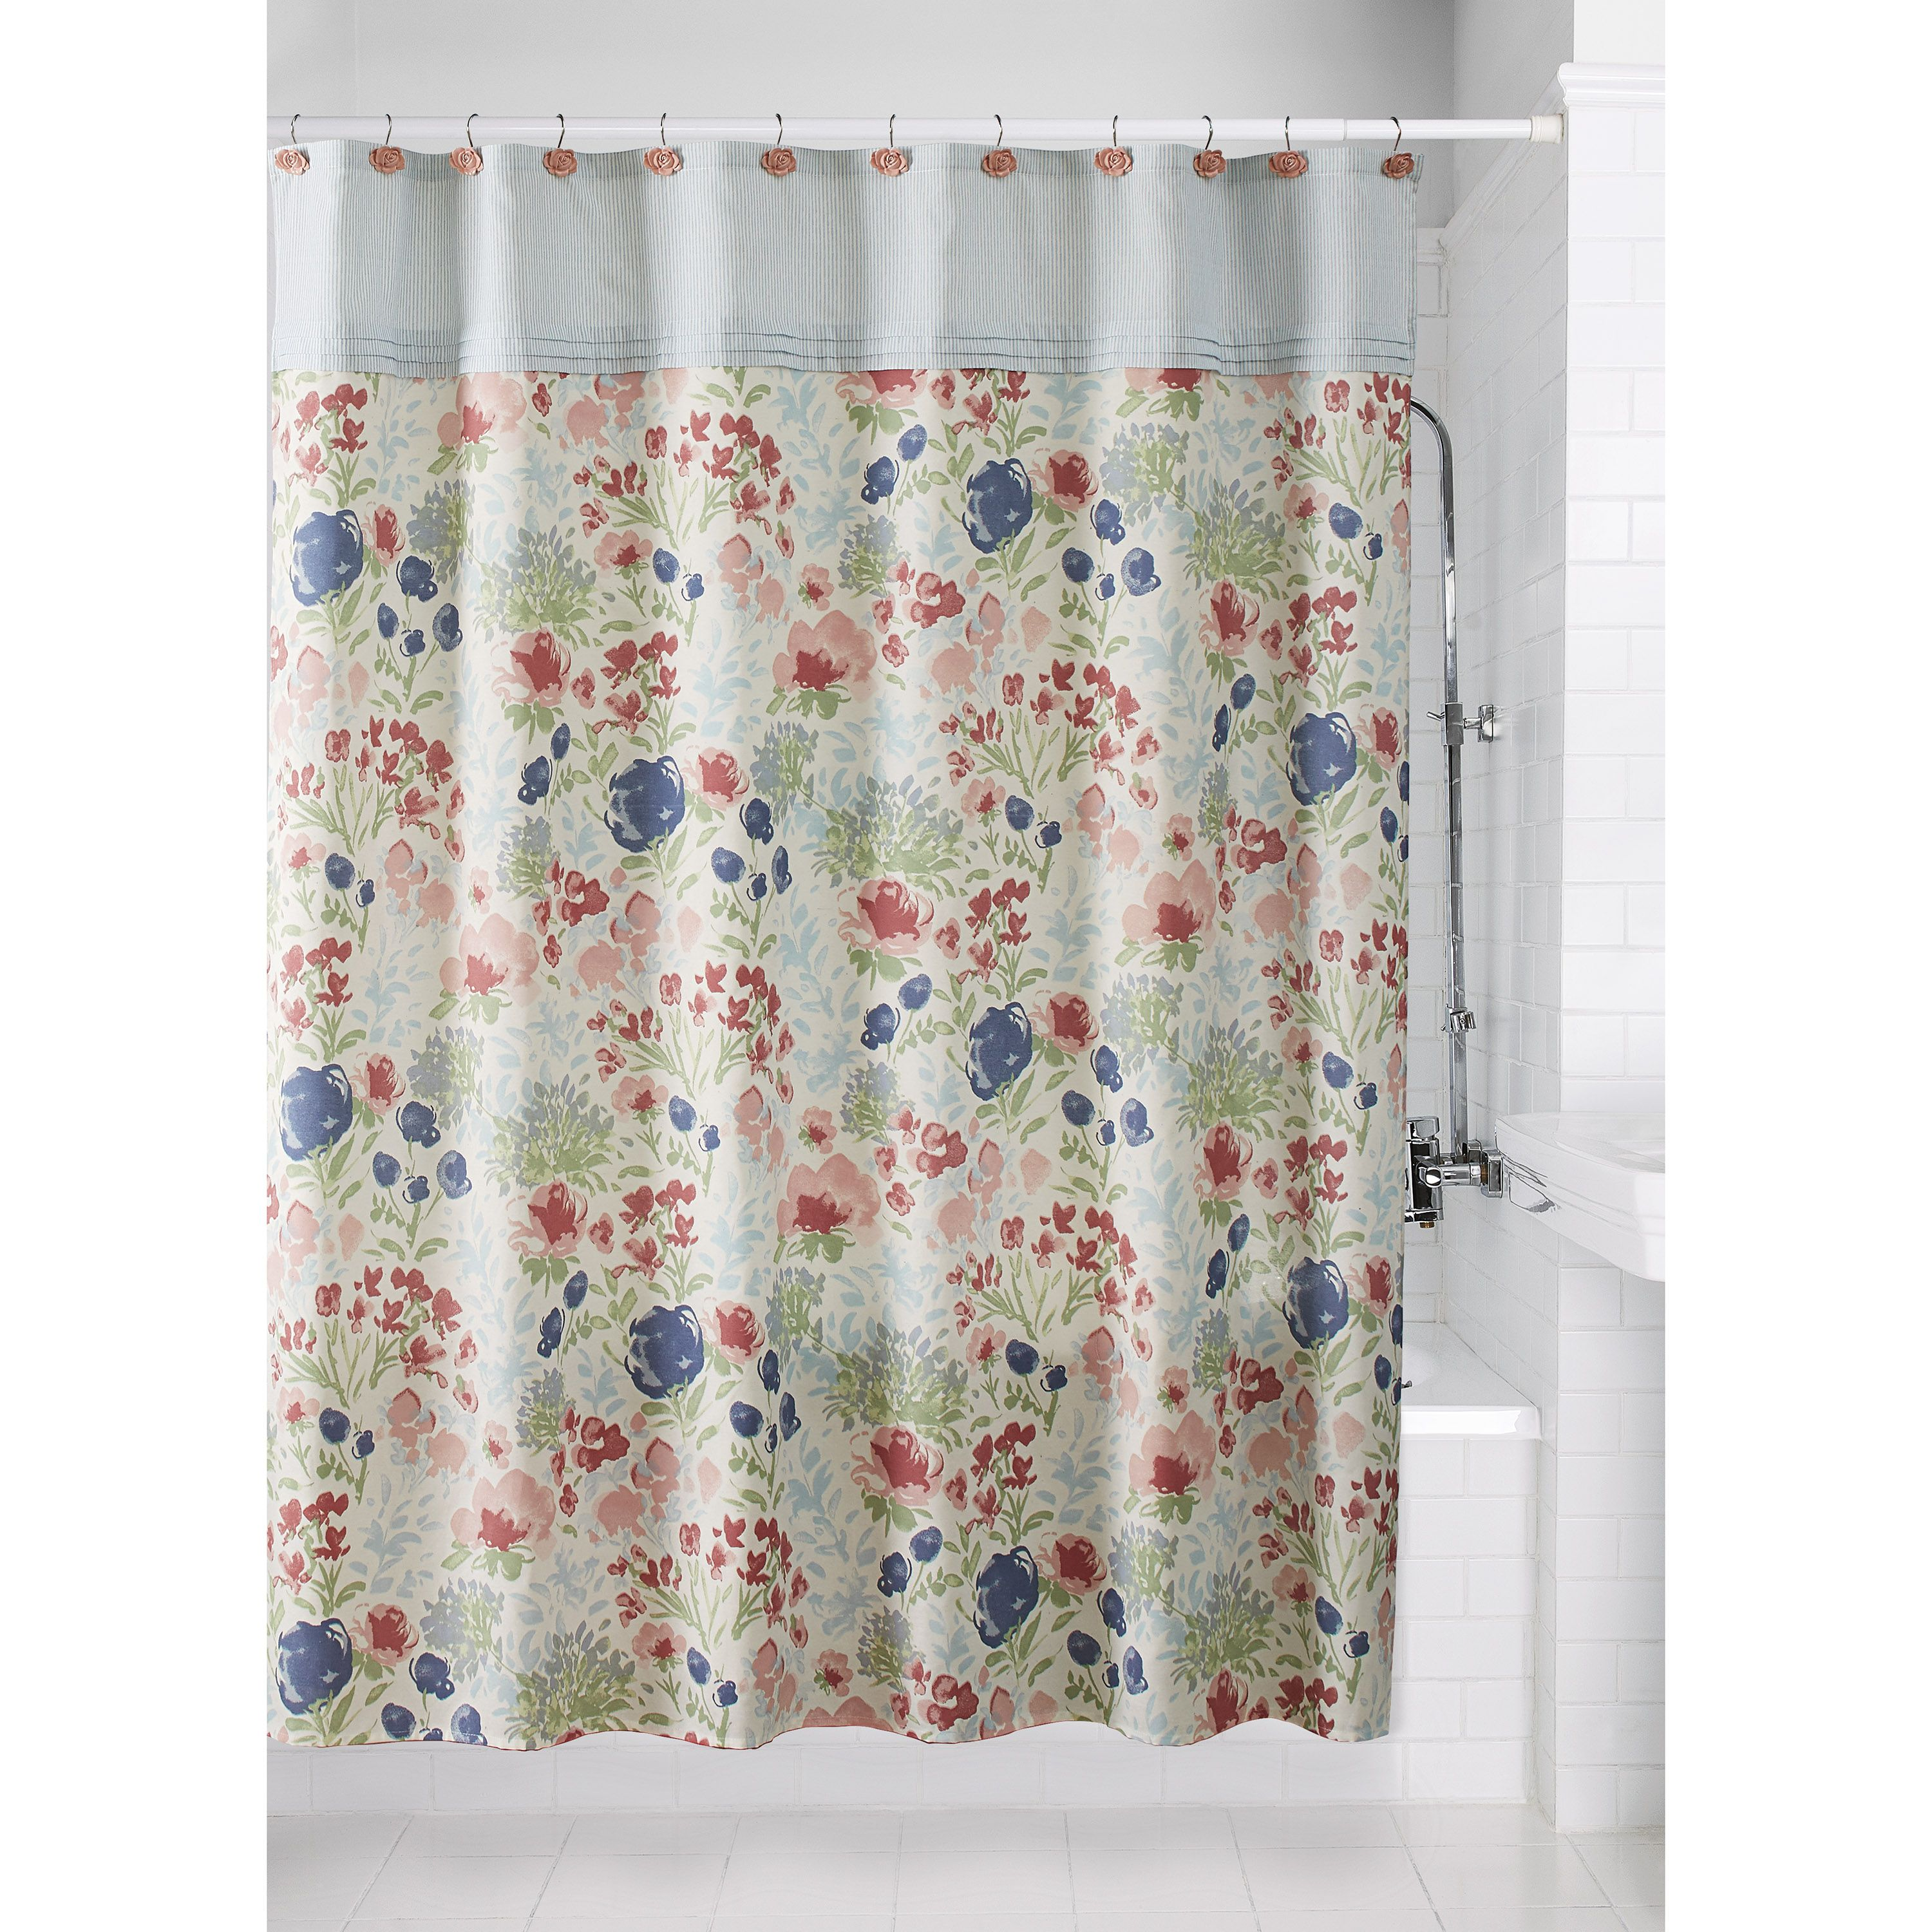 2c59e381eda546d59d0a3dc4b46a8c8c - Better Homes And Gardens Tranquil Floral Curtains